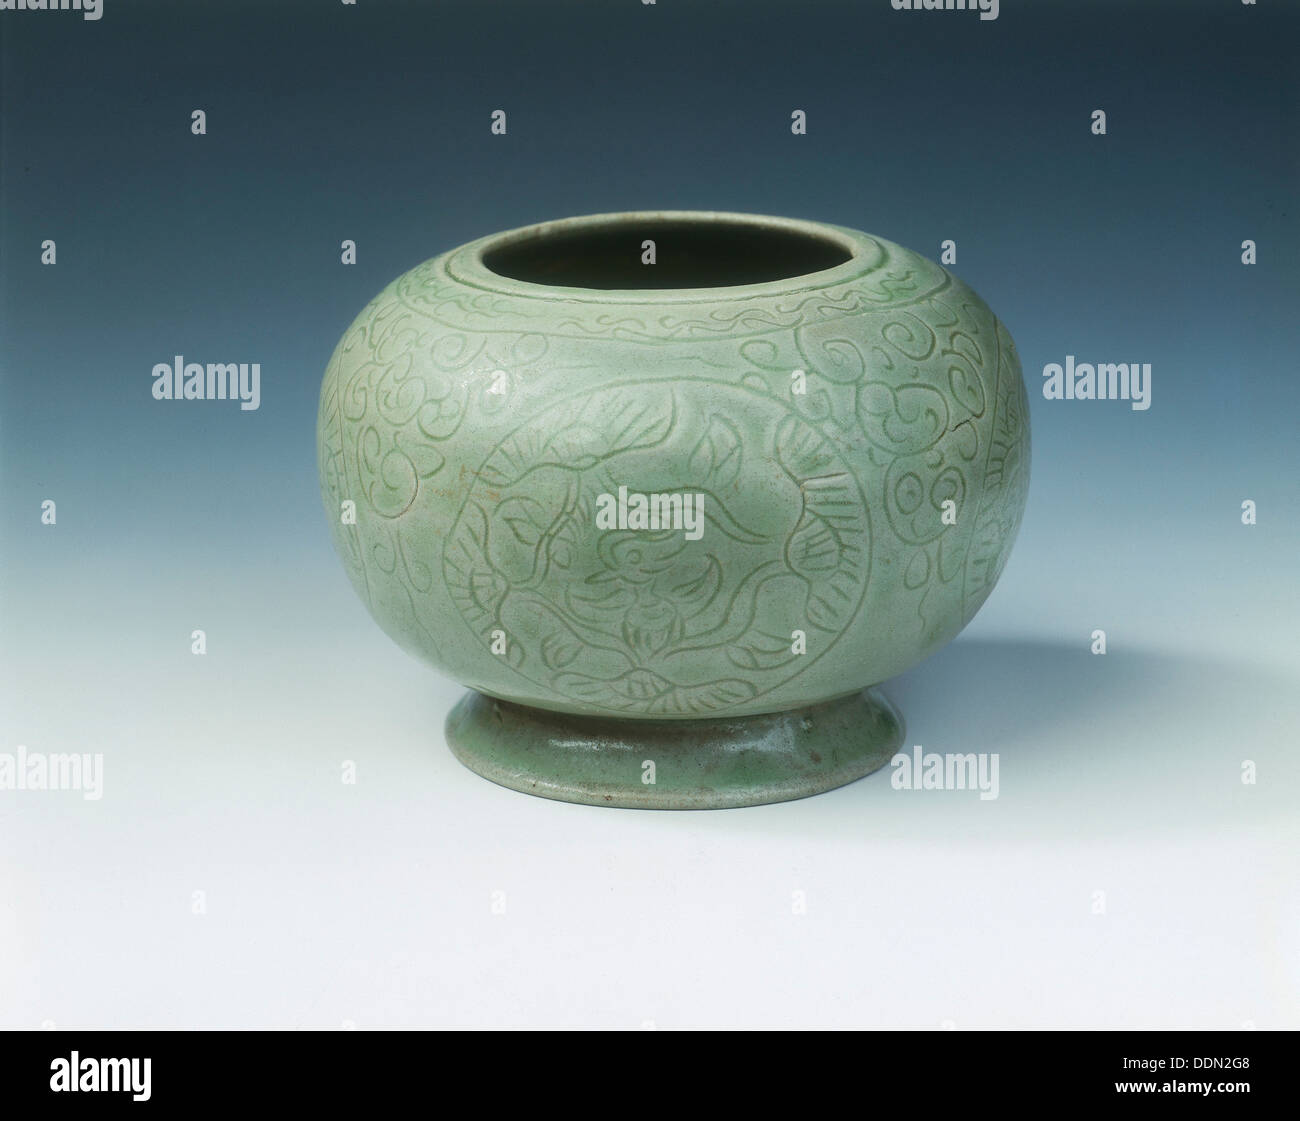 Yue celadon jar with mandarin ducks in lotus medallions, late Tang dynasty, China, 9th-10th century. - Stock Image